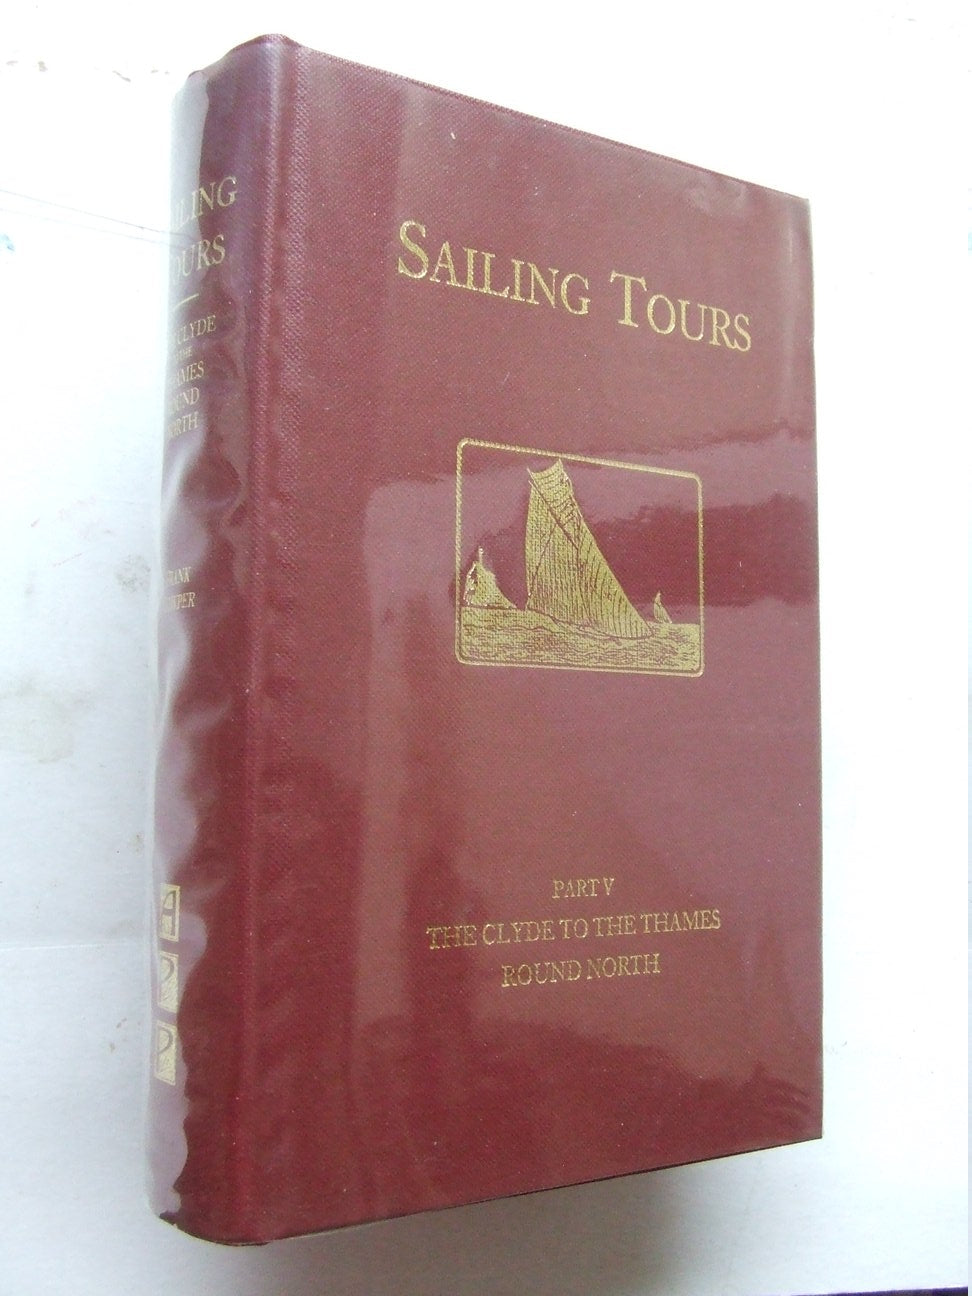 Sailing Tours:.... Part V [5]